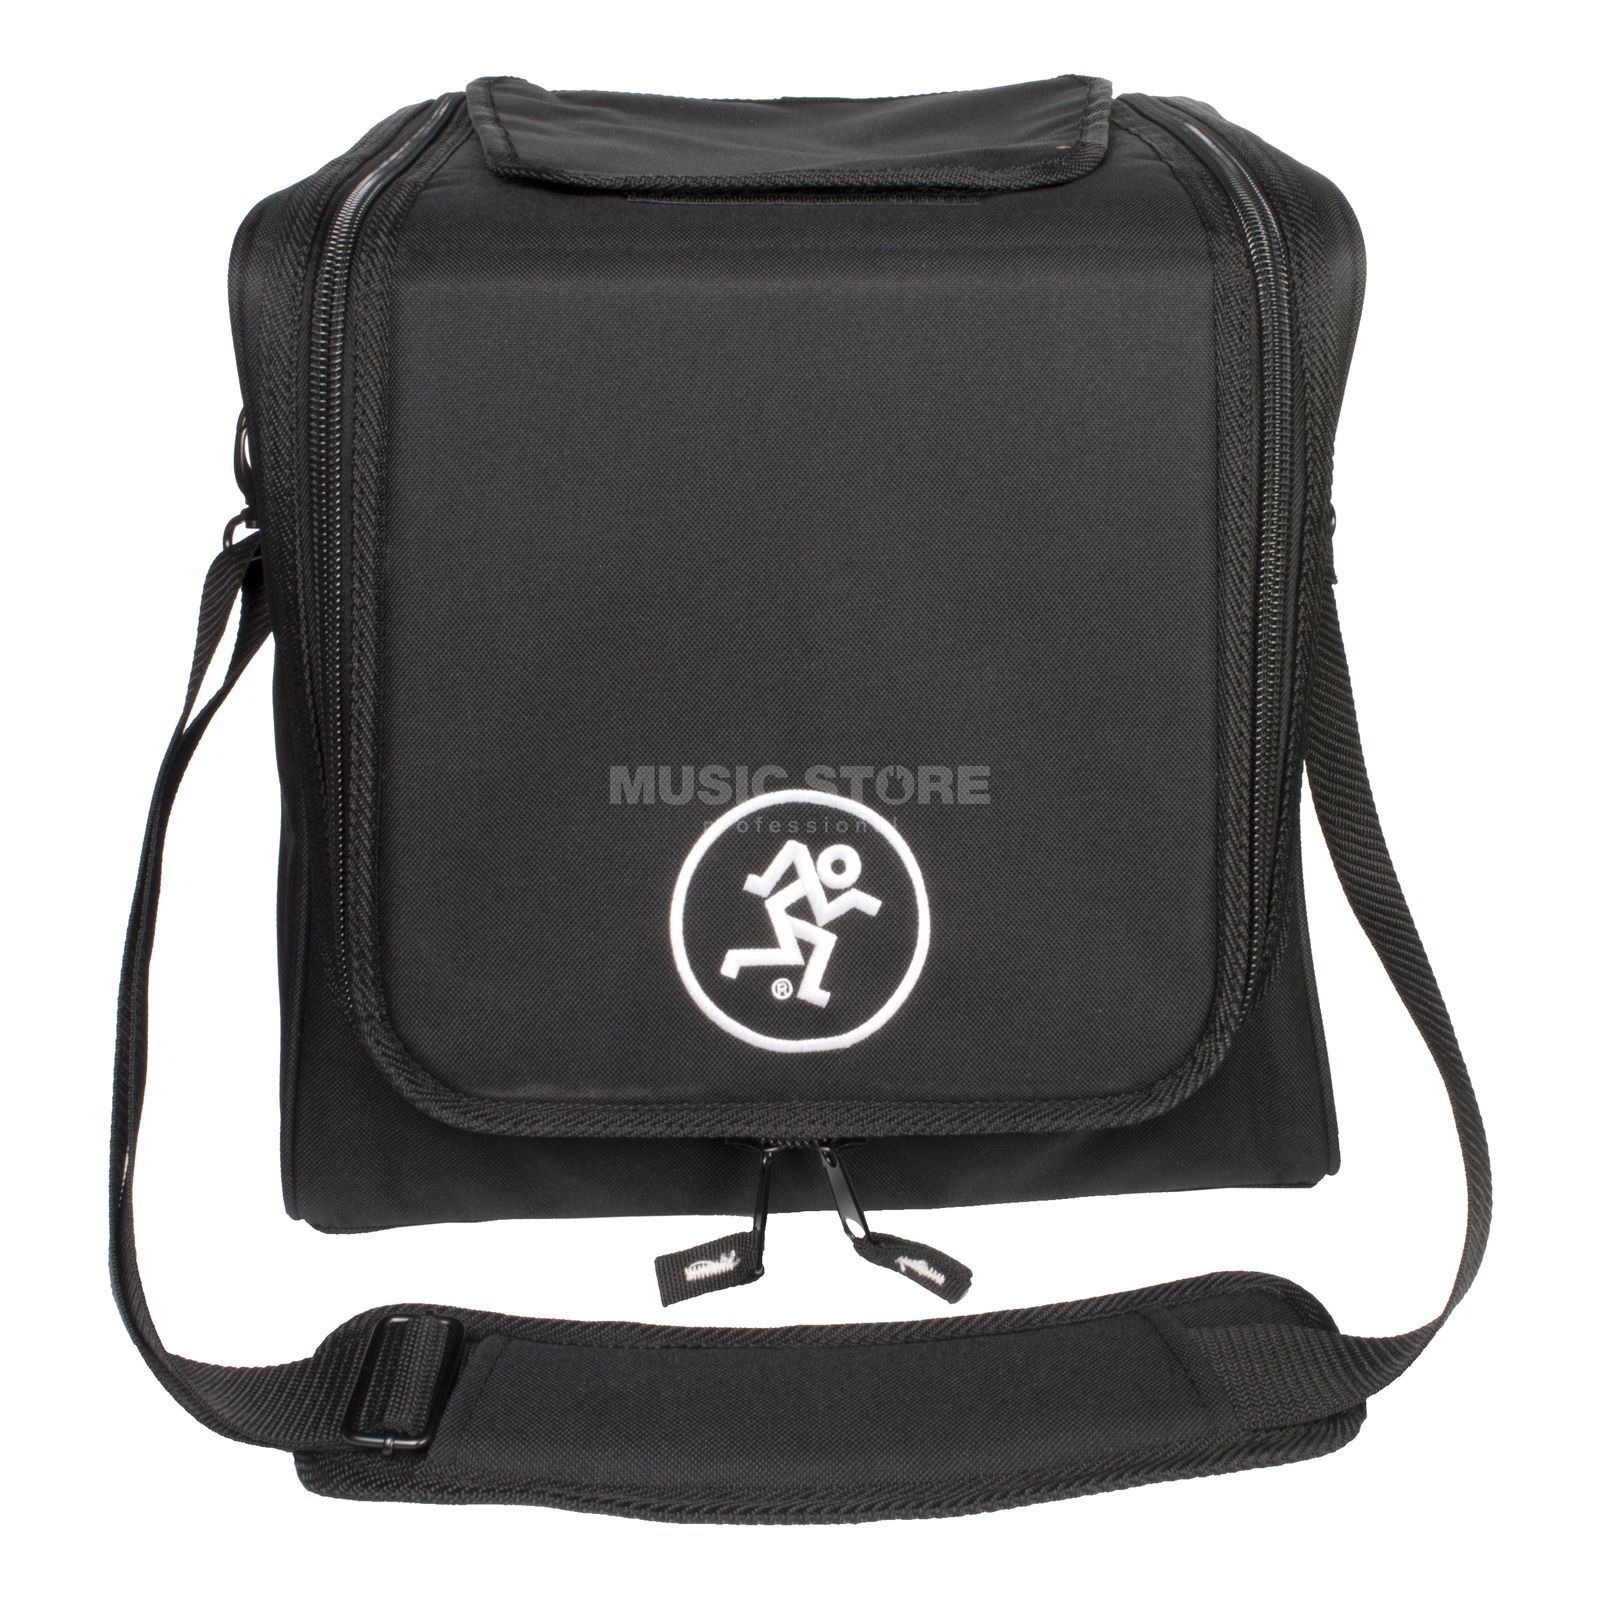 Mackie DLM12 Speaker Bag Carrying Bag for DLM12 Produktbillede